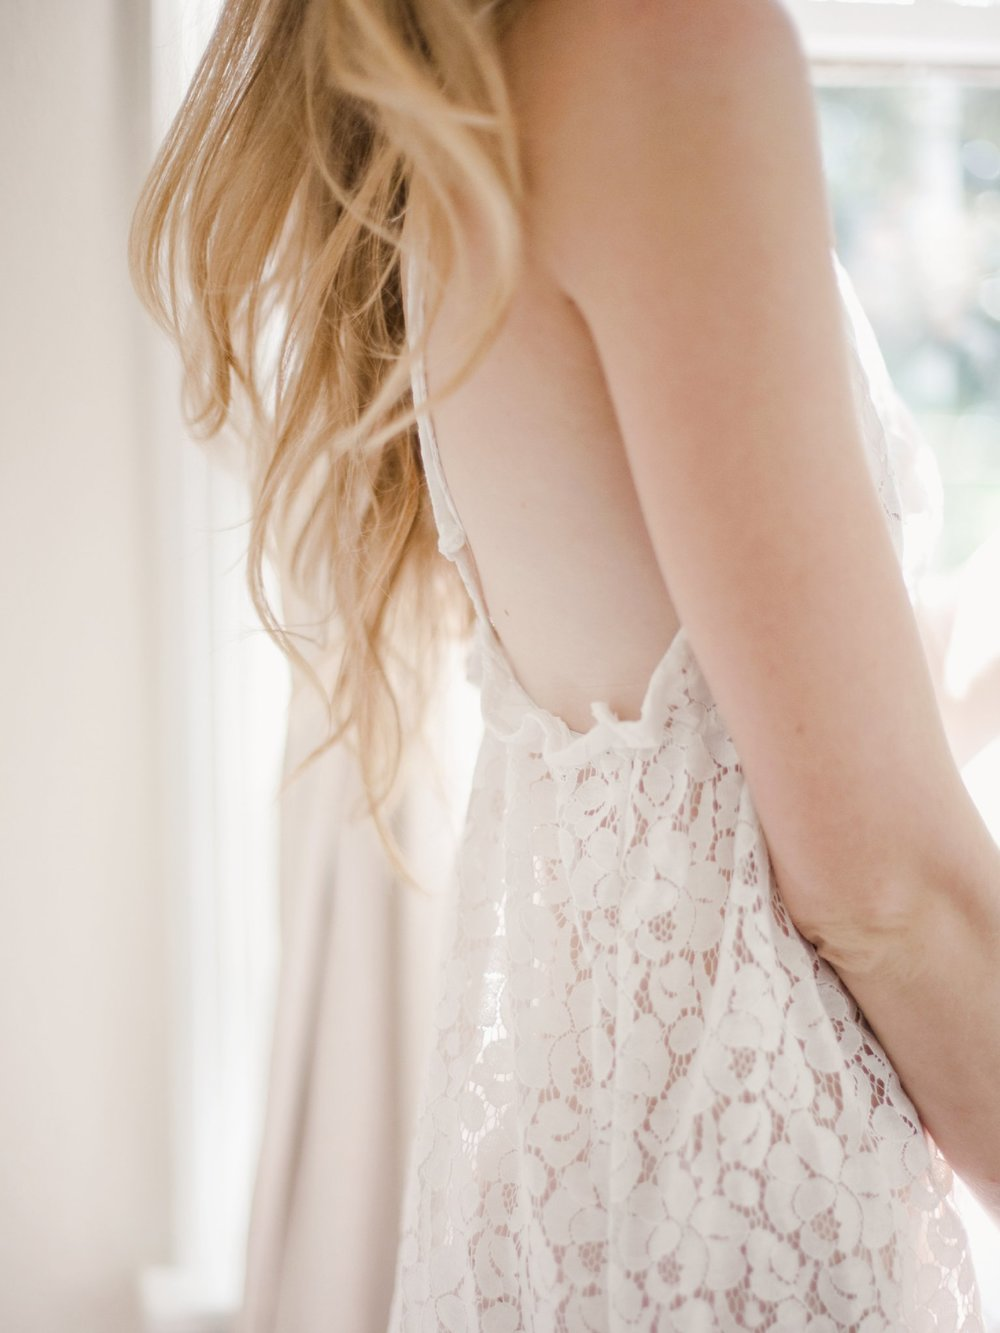 love ophelia bridal lingerie photographer los angeles california photographer shannon griffin photography-25.jpg